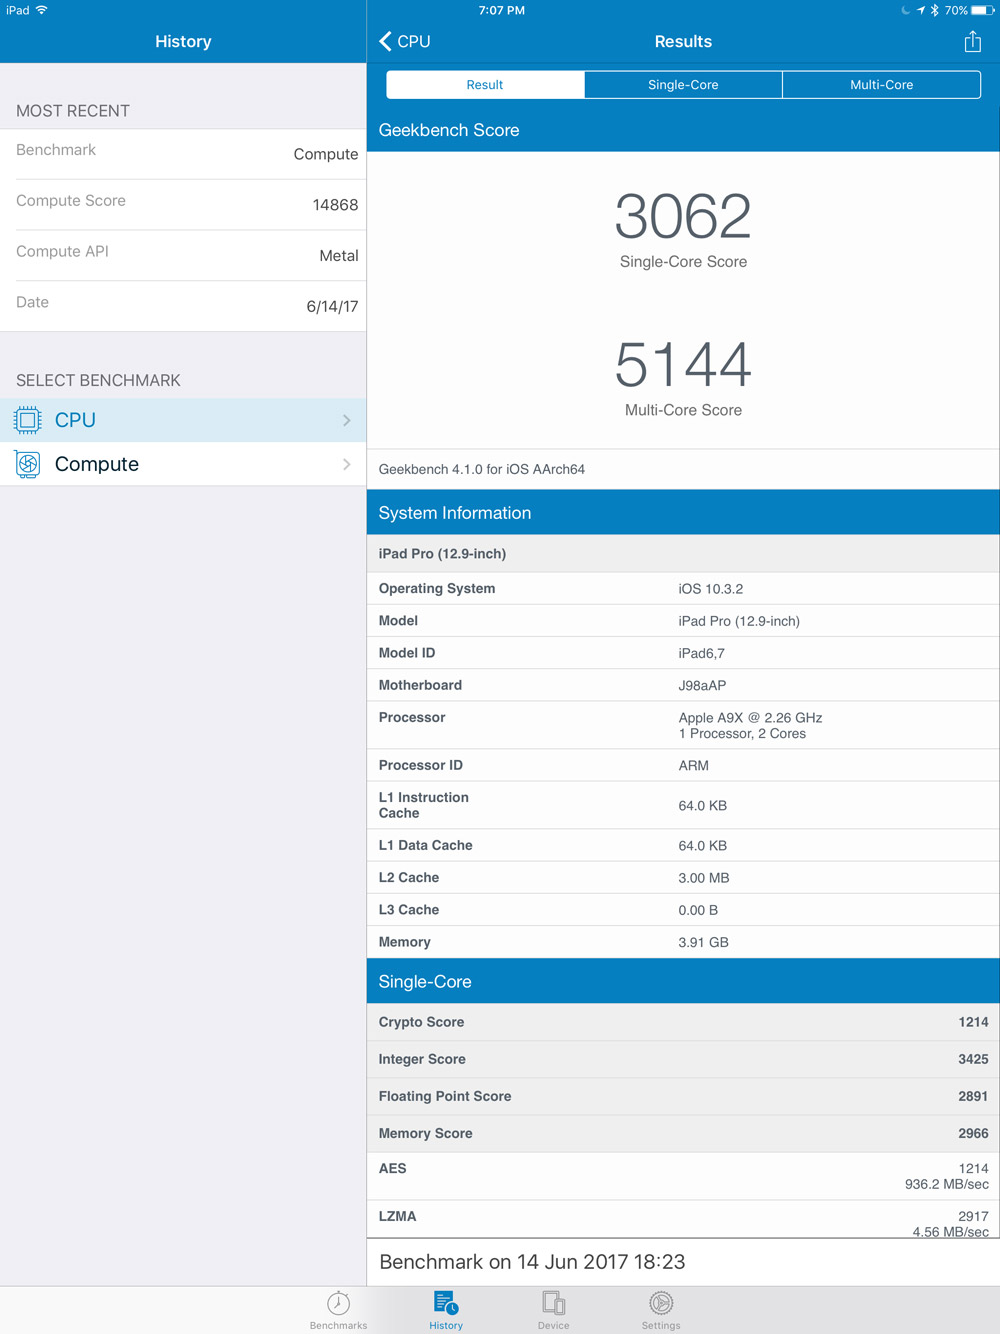 Geekbench 4 CPU benchmark for the 2015